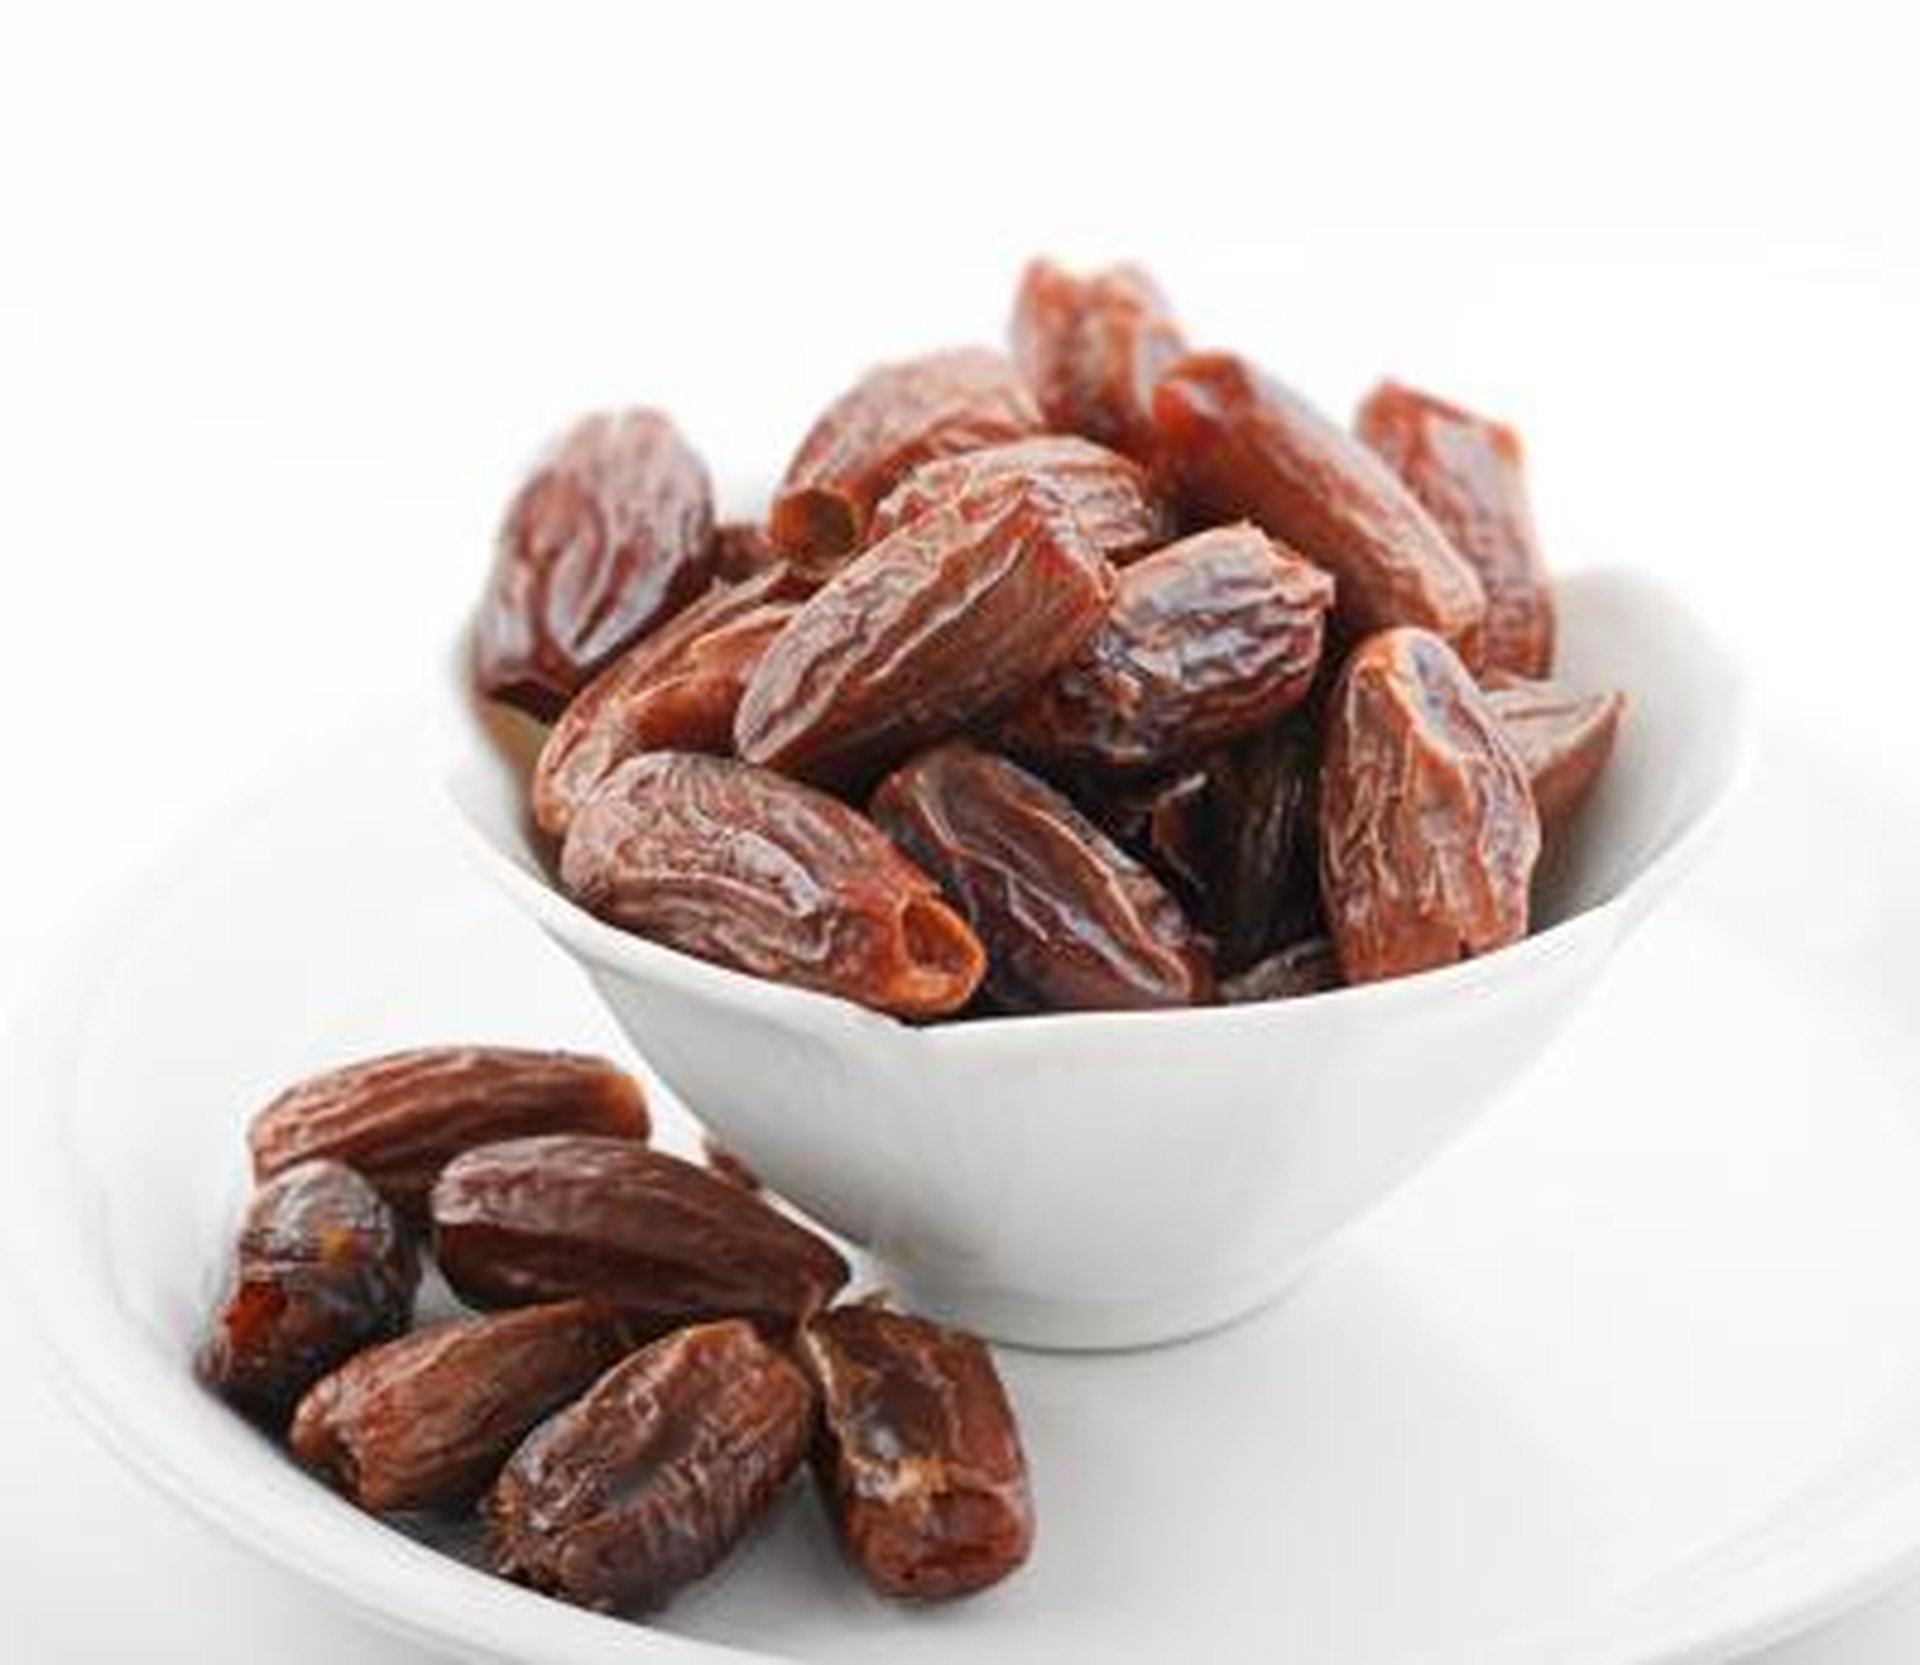 Calorie dried fruit. The benefits and harms of dried fruit 3